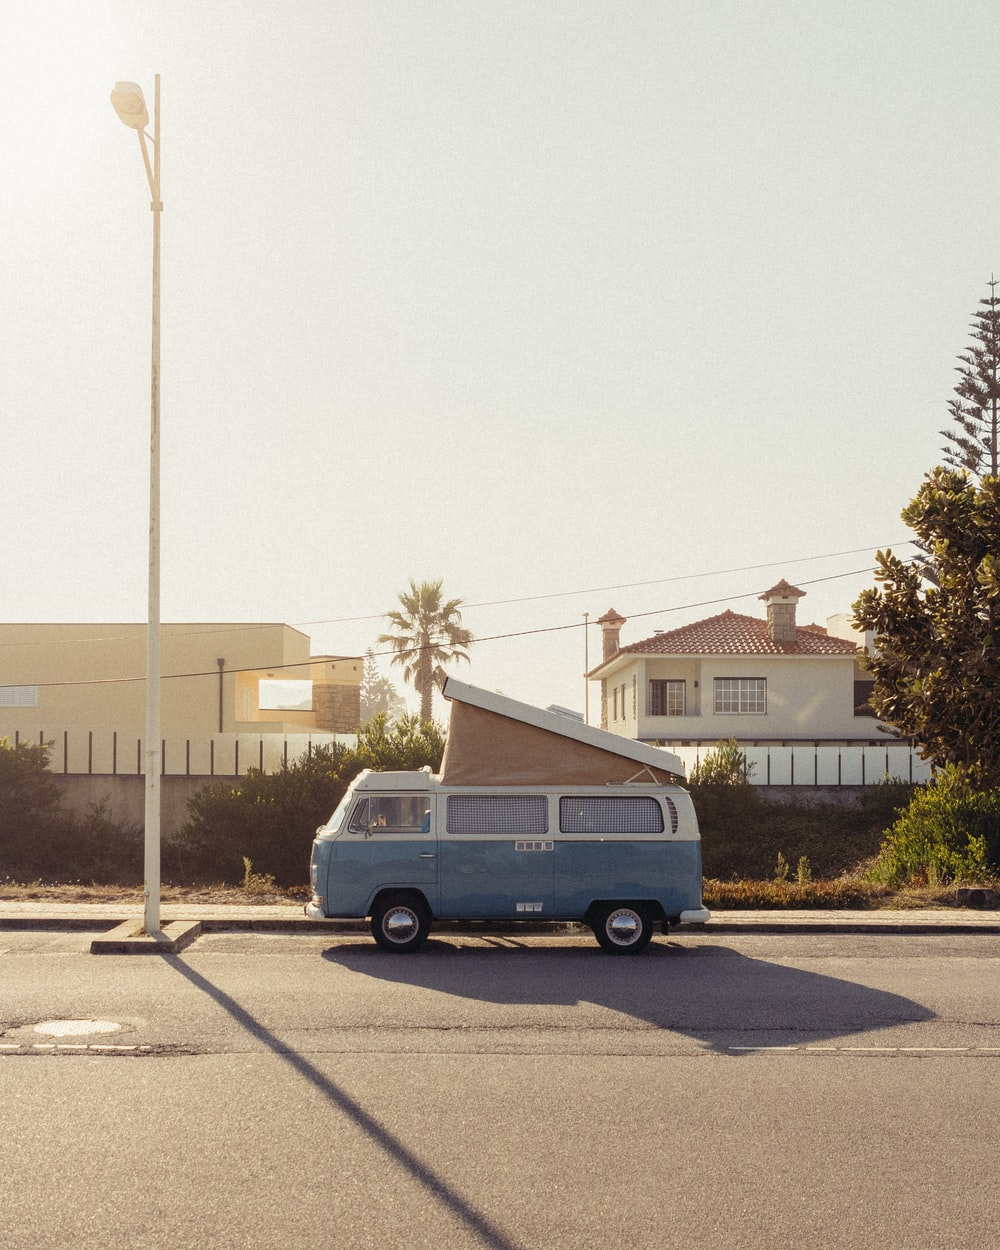 blue van parked on gray concrete road during daytime